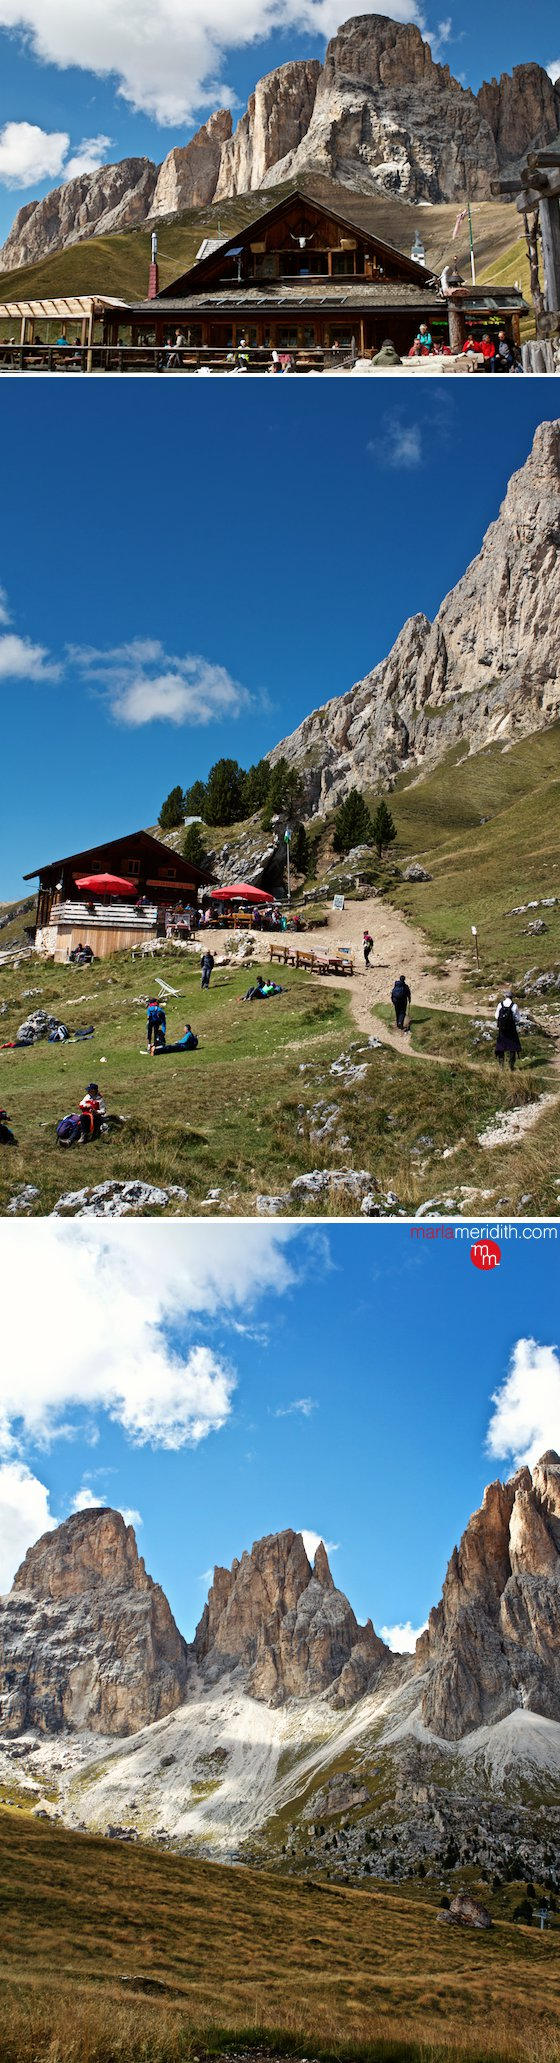 Hiking in the Dolomites #Italy | MarlaMeridith.com ( @marlameridith ) #travel #hiking